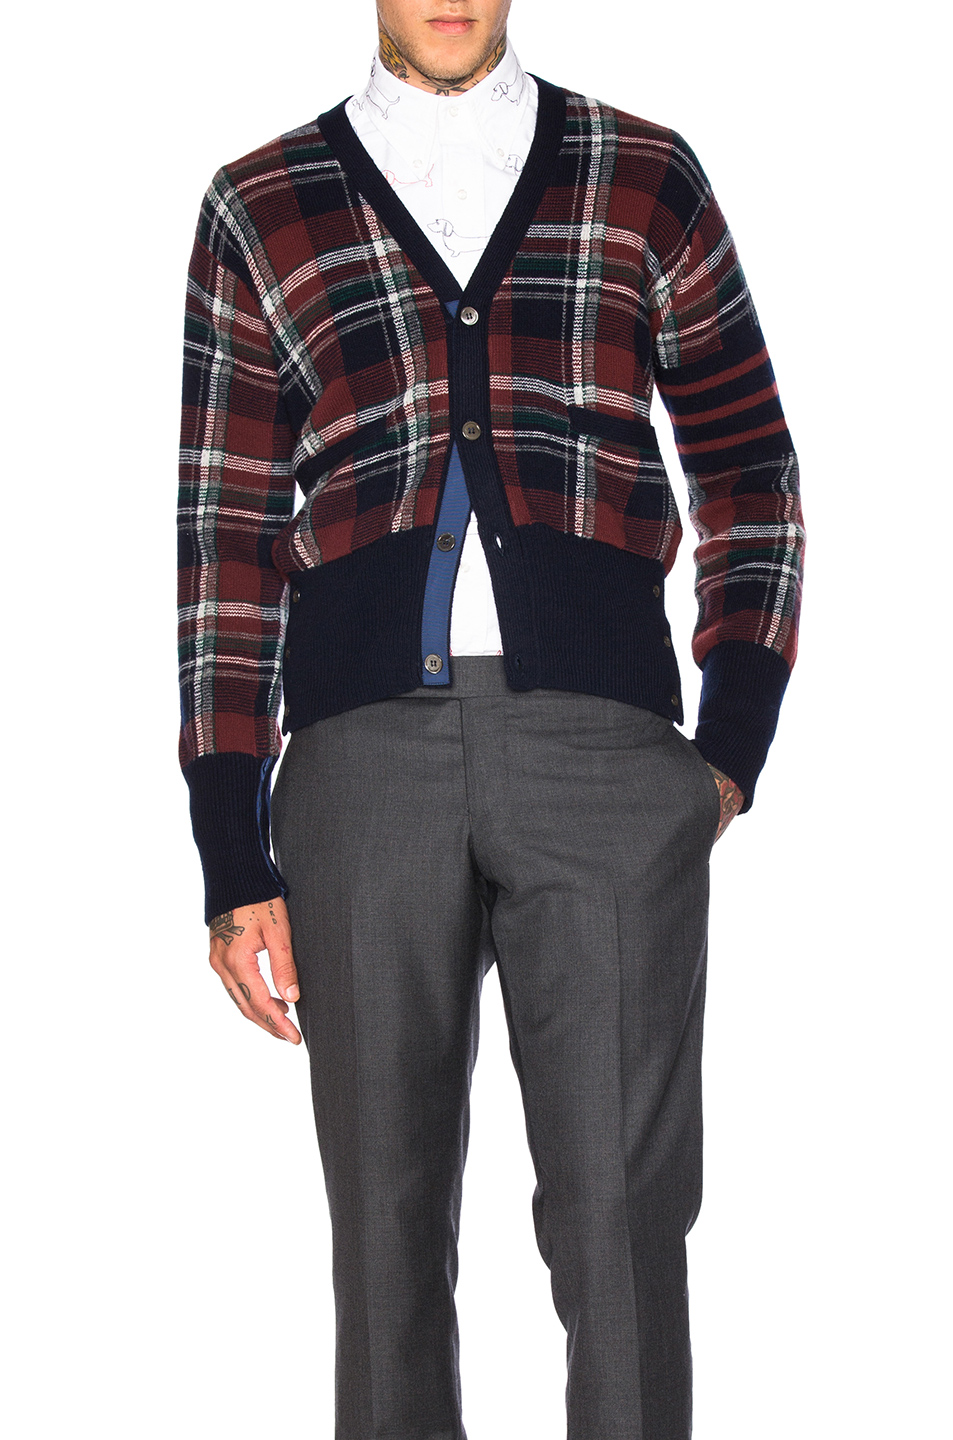 Thom Browne Tartan Plaid Wool Cardigan in Red,Checkered & Plaid